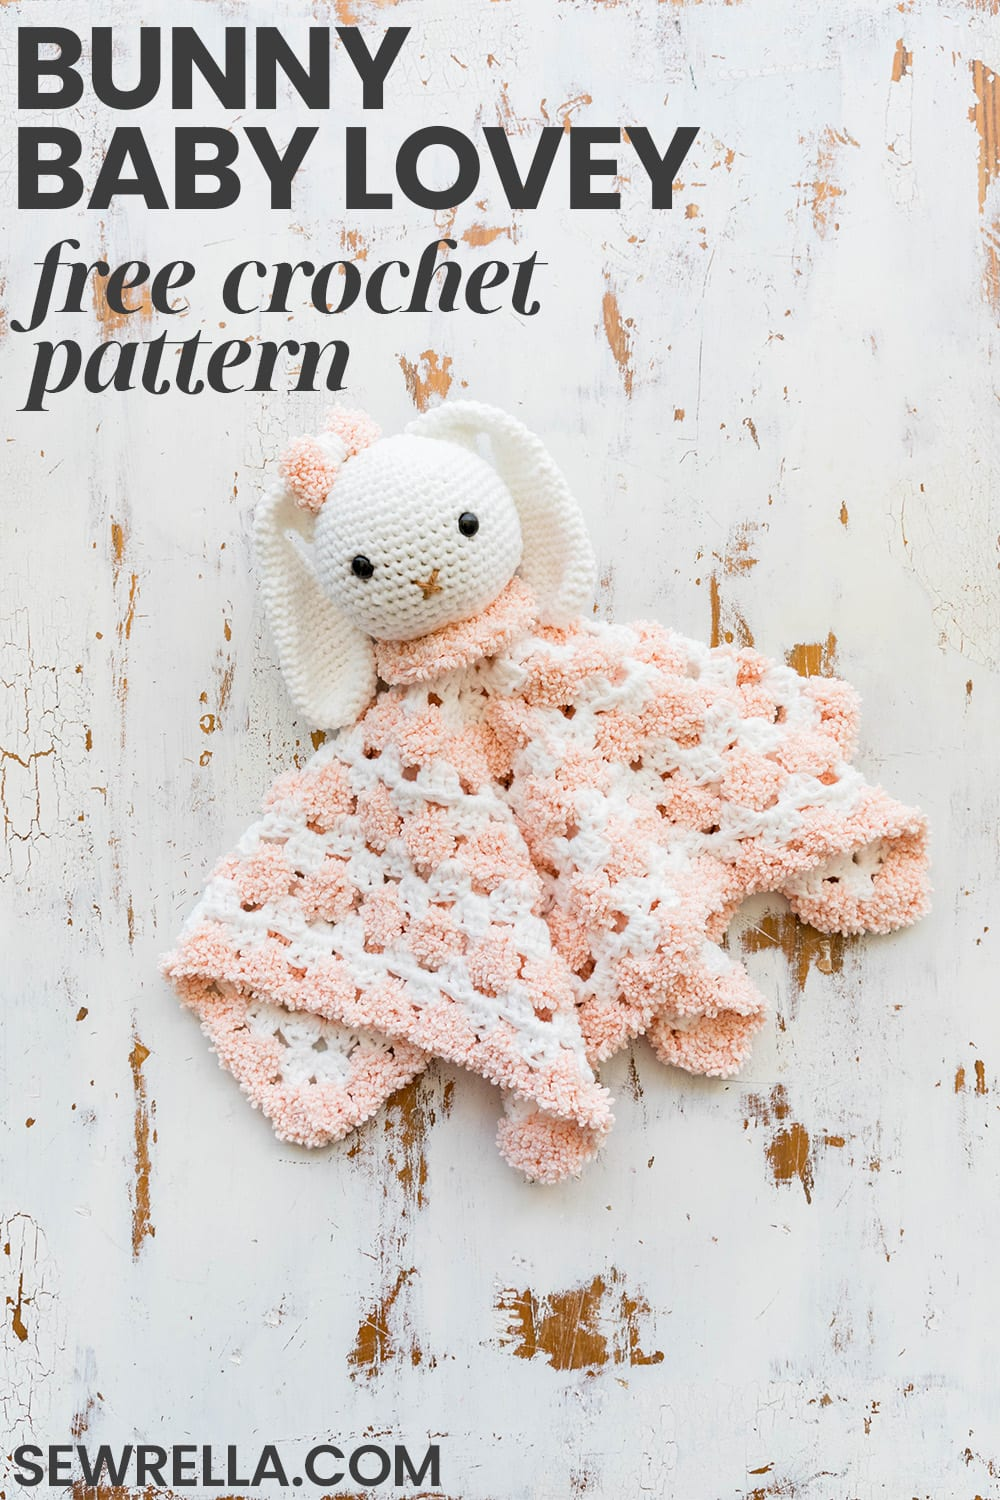 Velvet Easter Bunny Basket Free Crochet Pattern Tutorial | 1500x1000